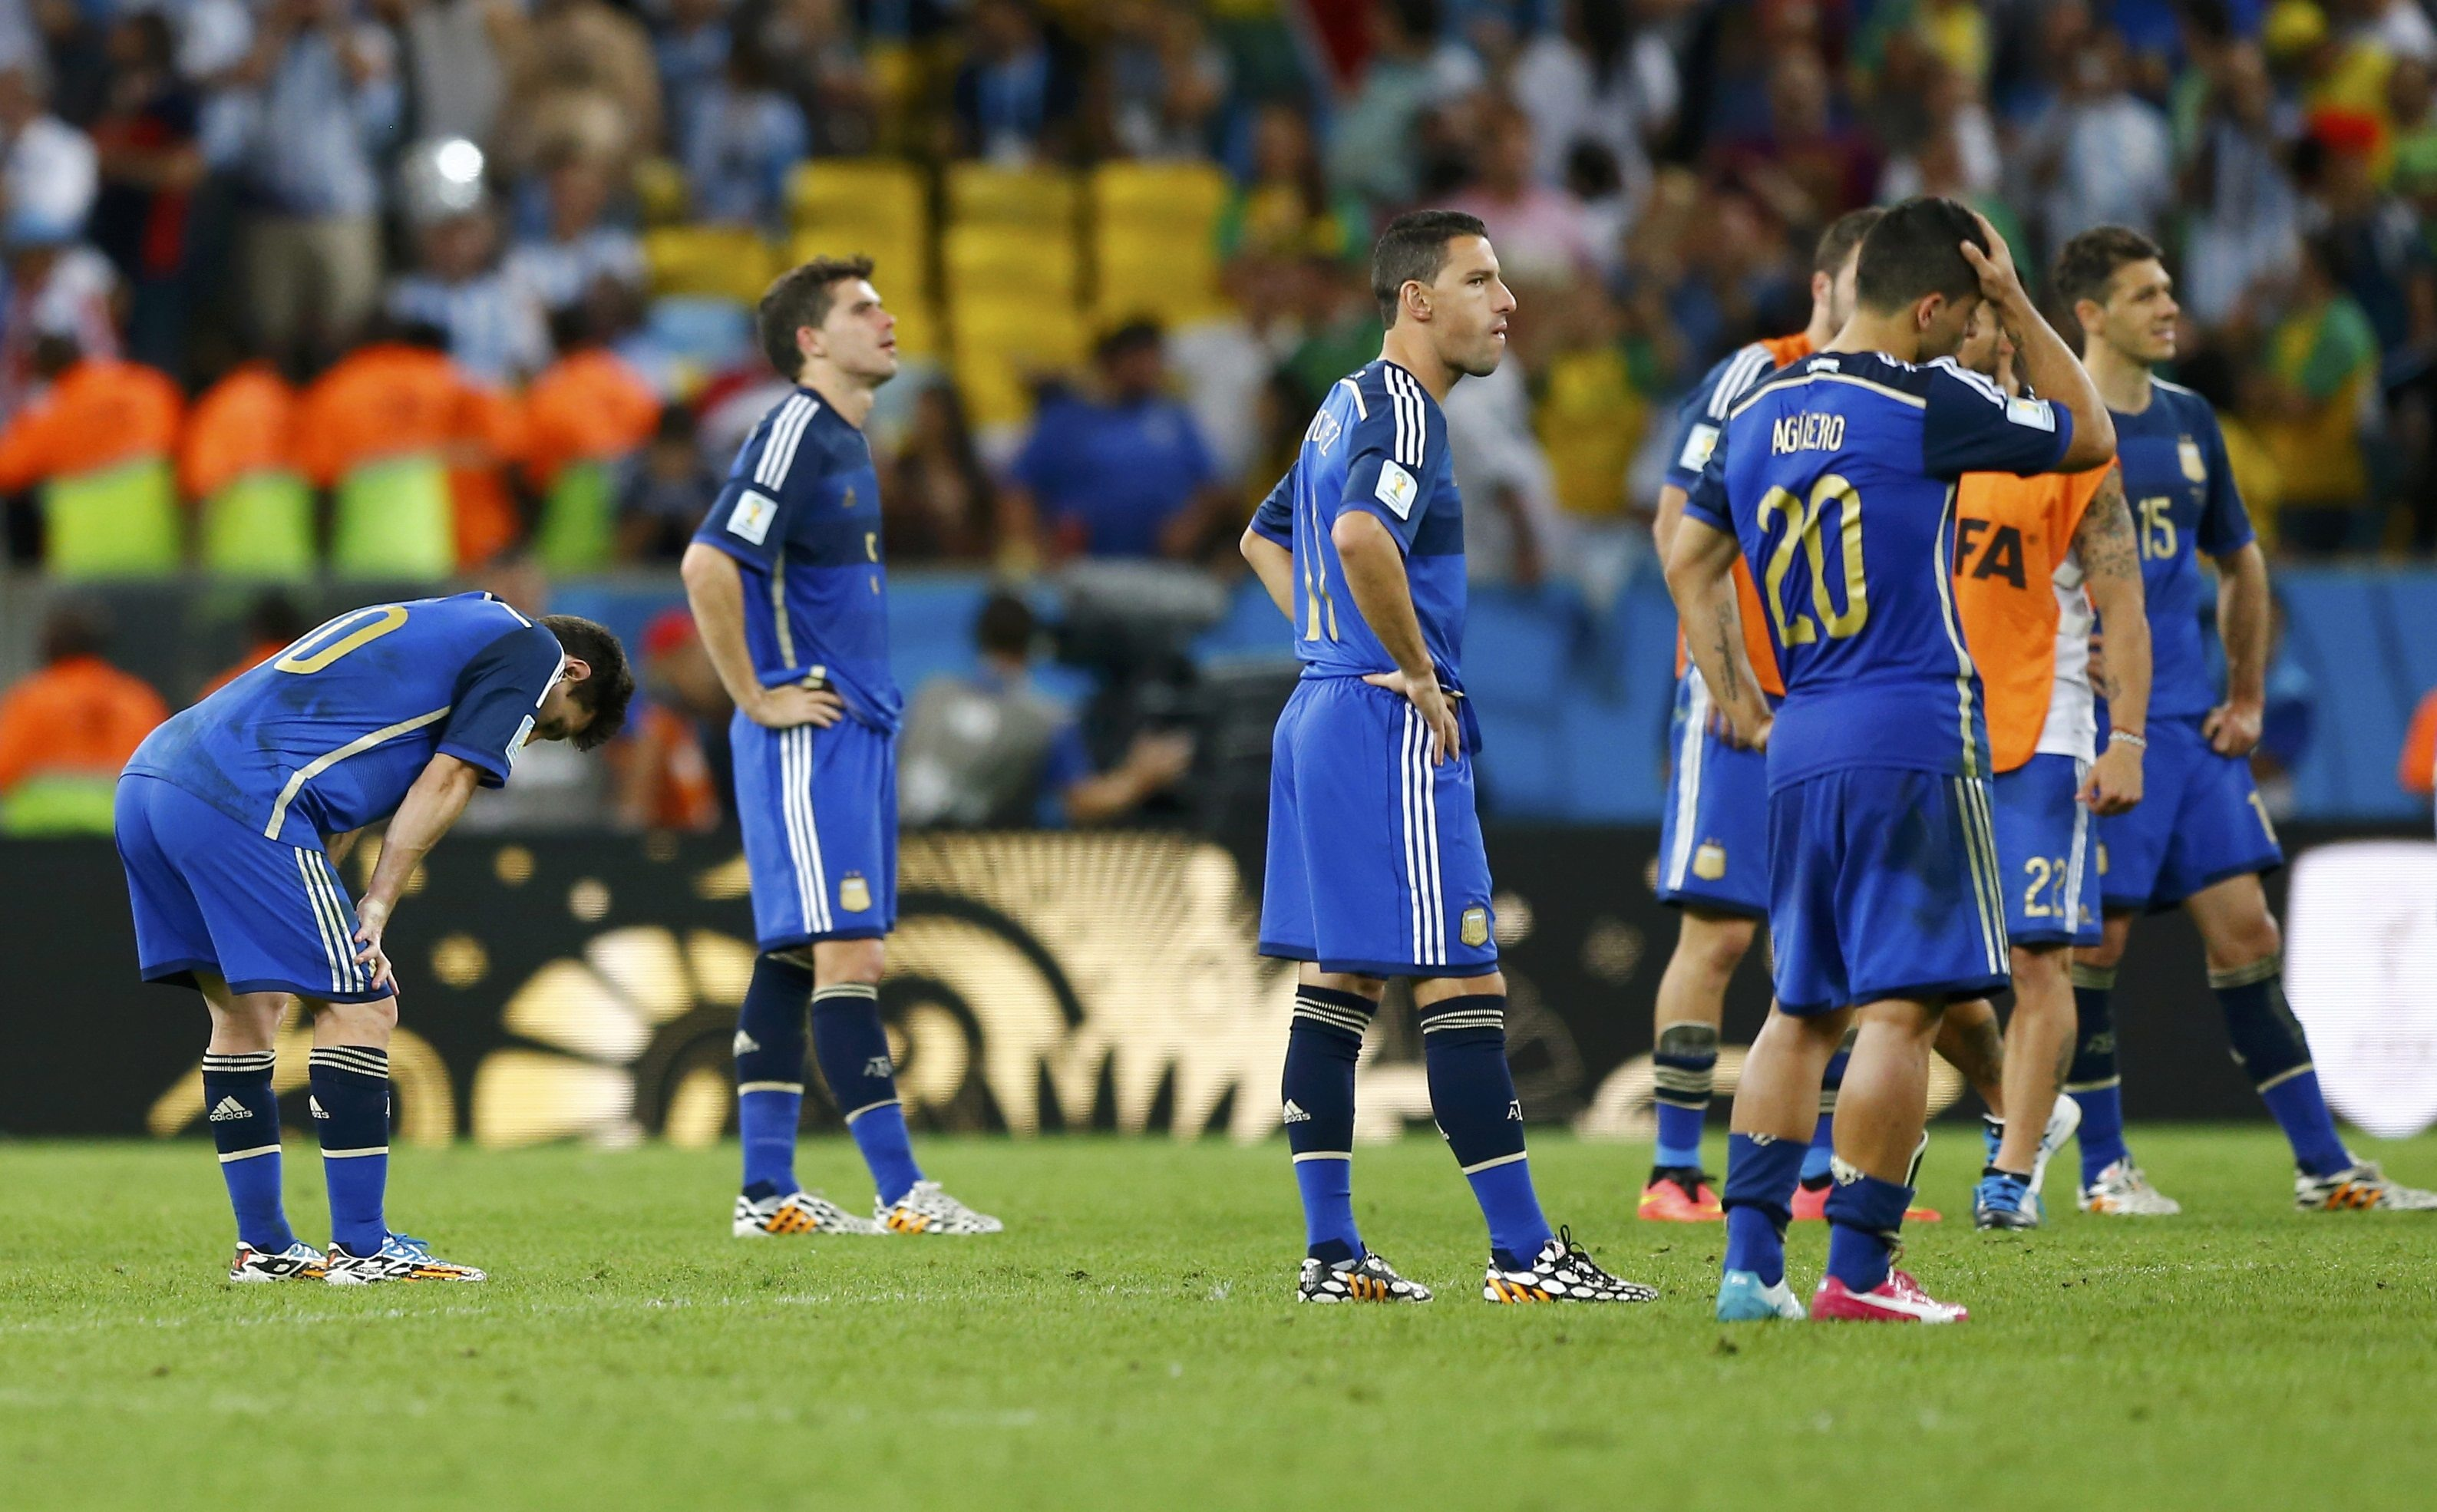 Argentina's players react after their loss to Germany in their 2014 World Cup final. Reuters